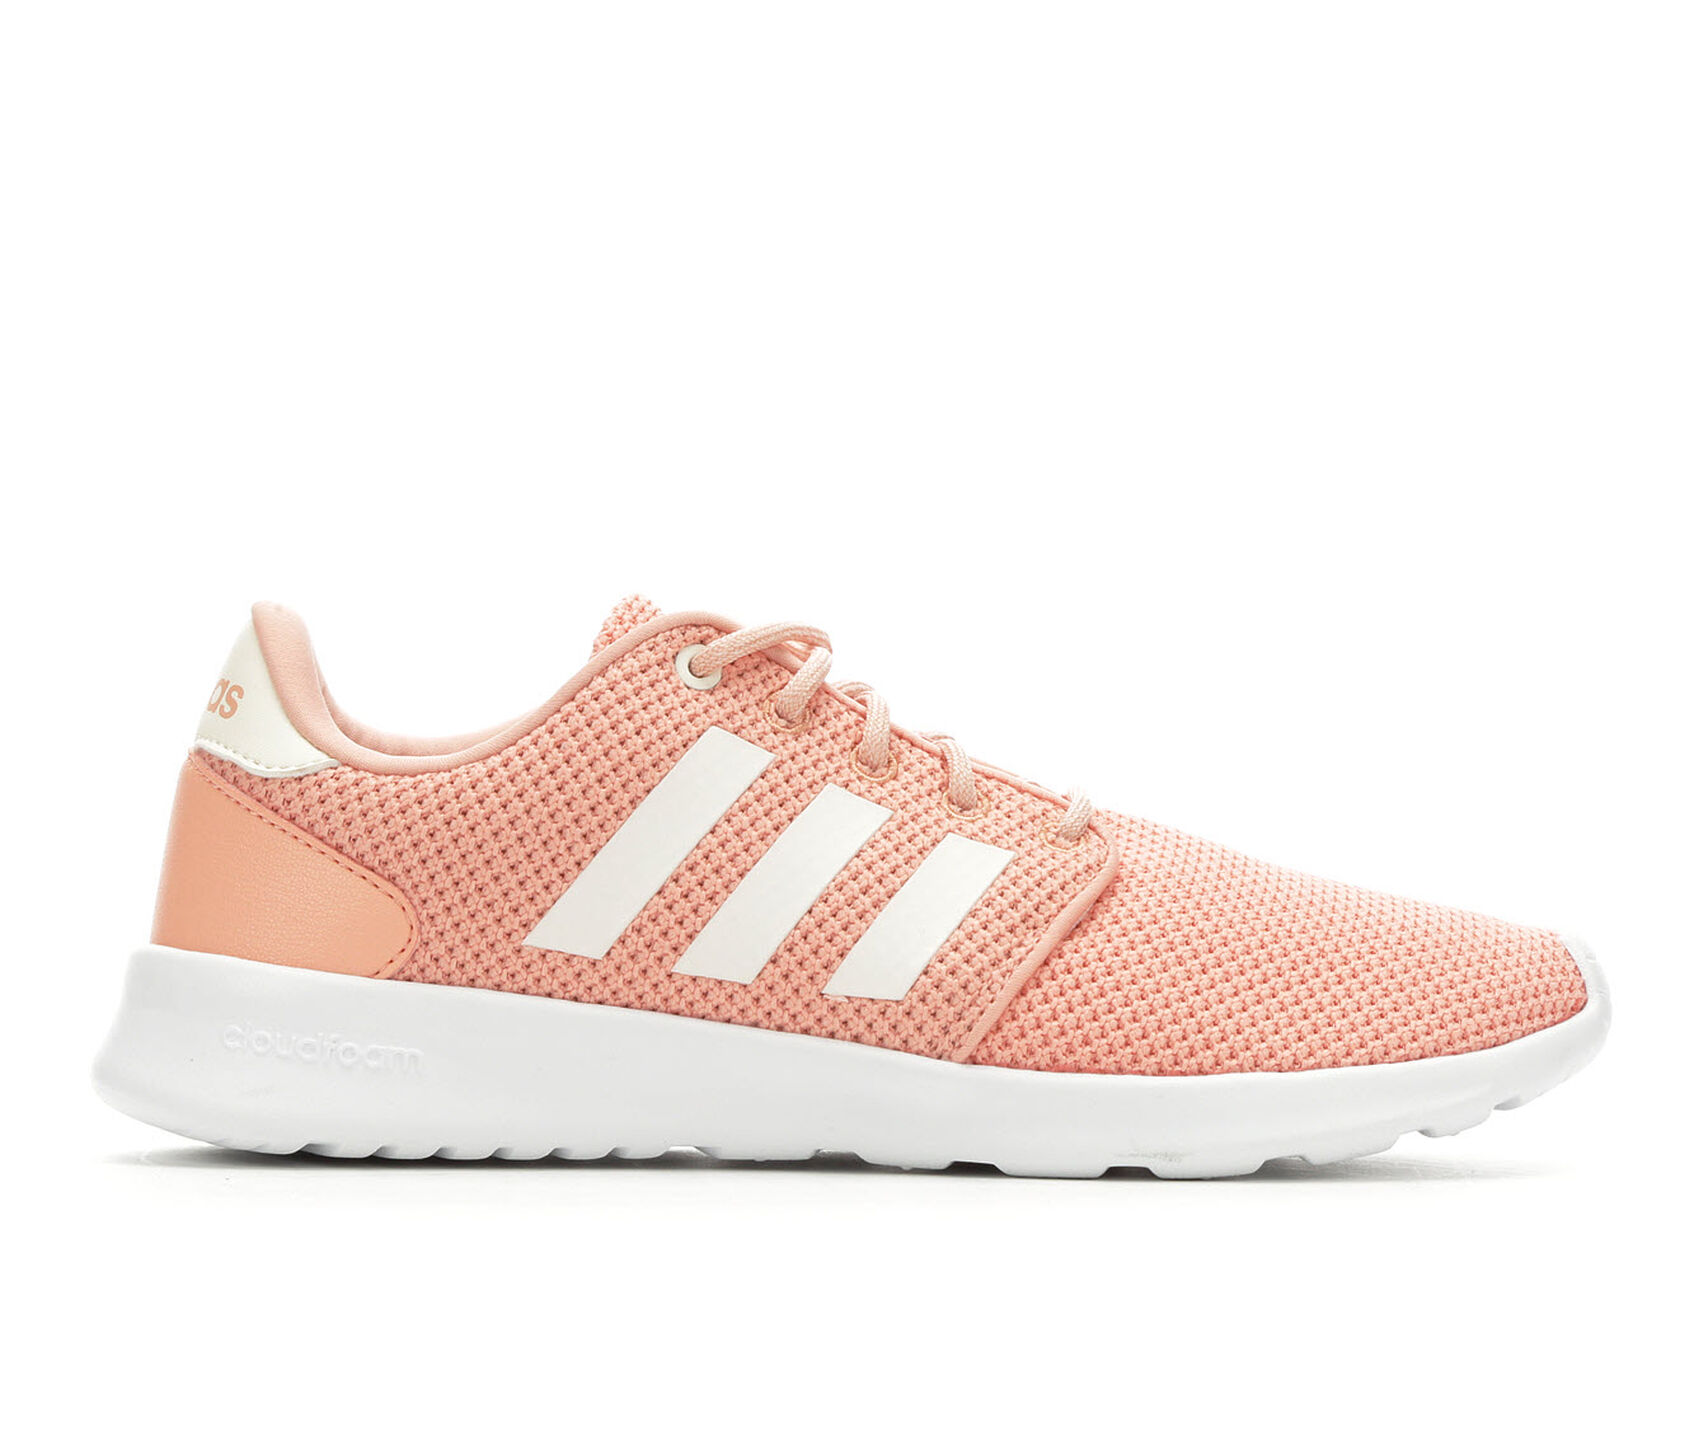 6feaeca421c ... Adidas Cloudfoam QT Racer Sneakers. Previous